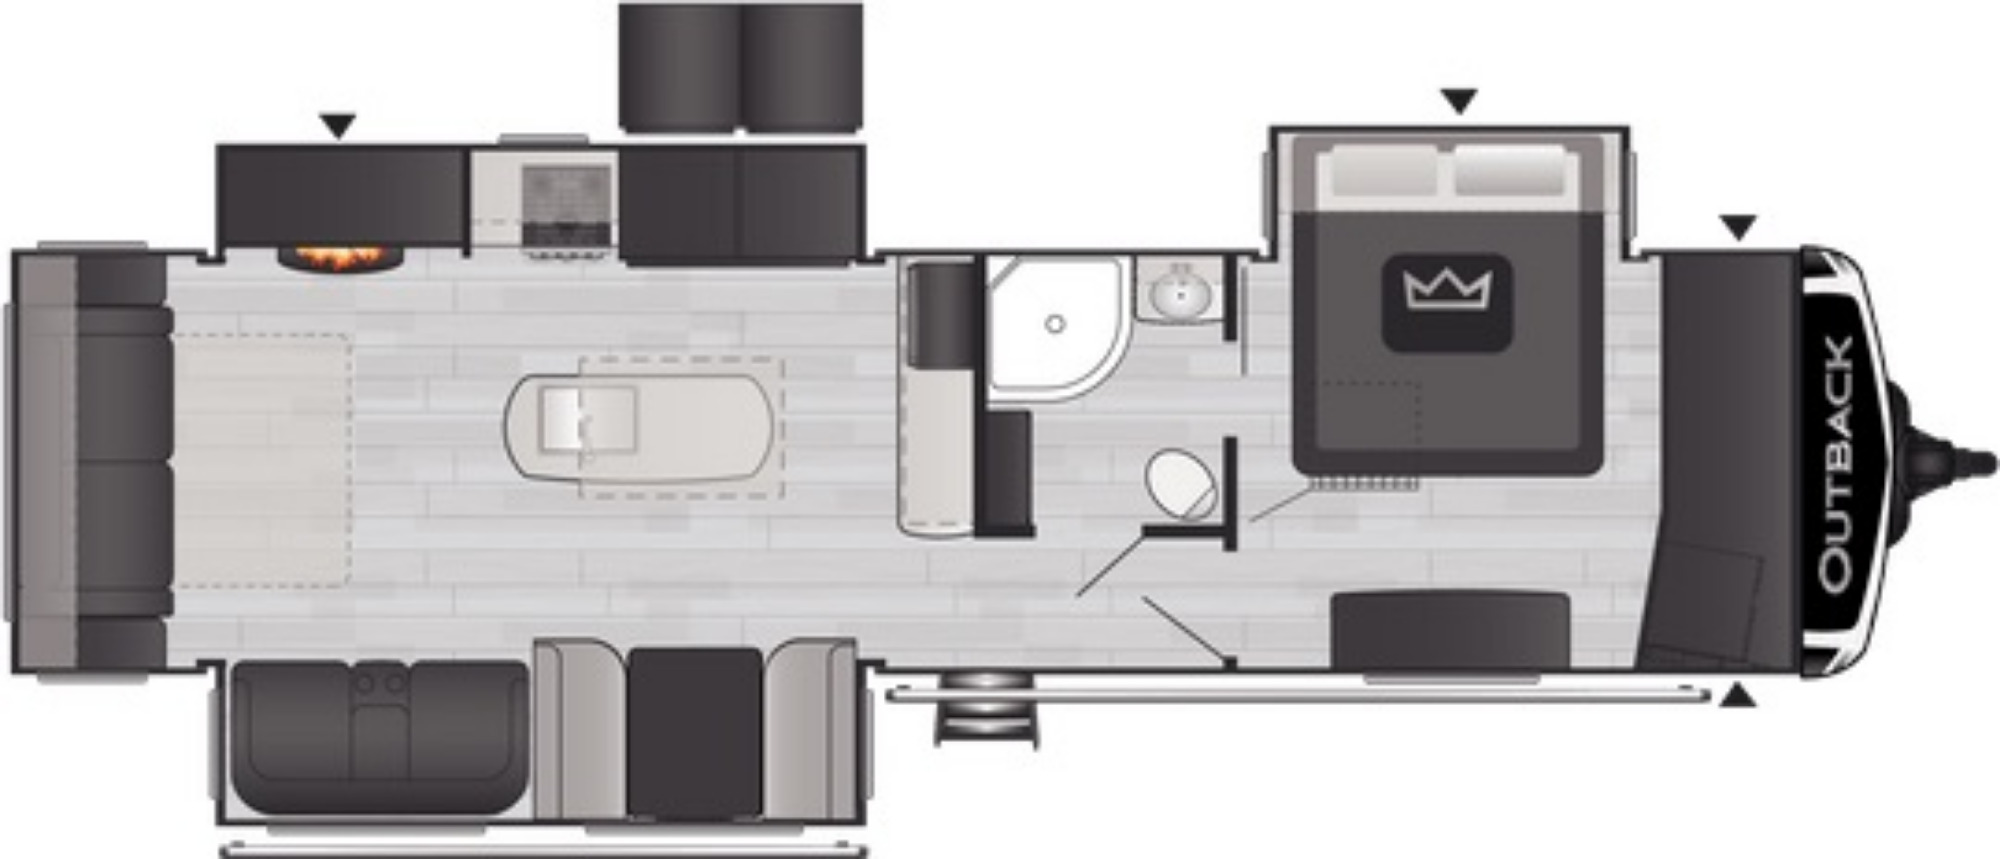 View Floor Plan for 2021 KEYSTONE OUTBACK 328RL